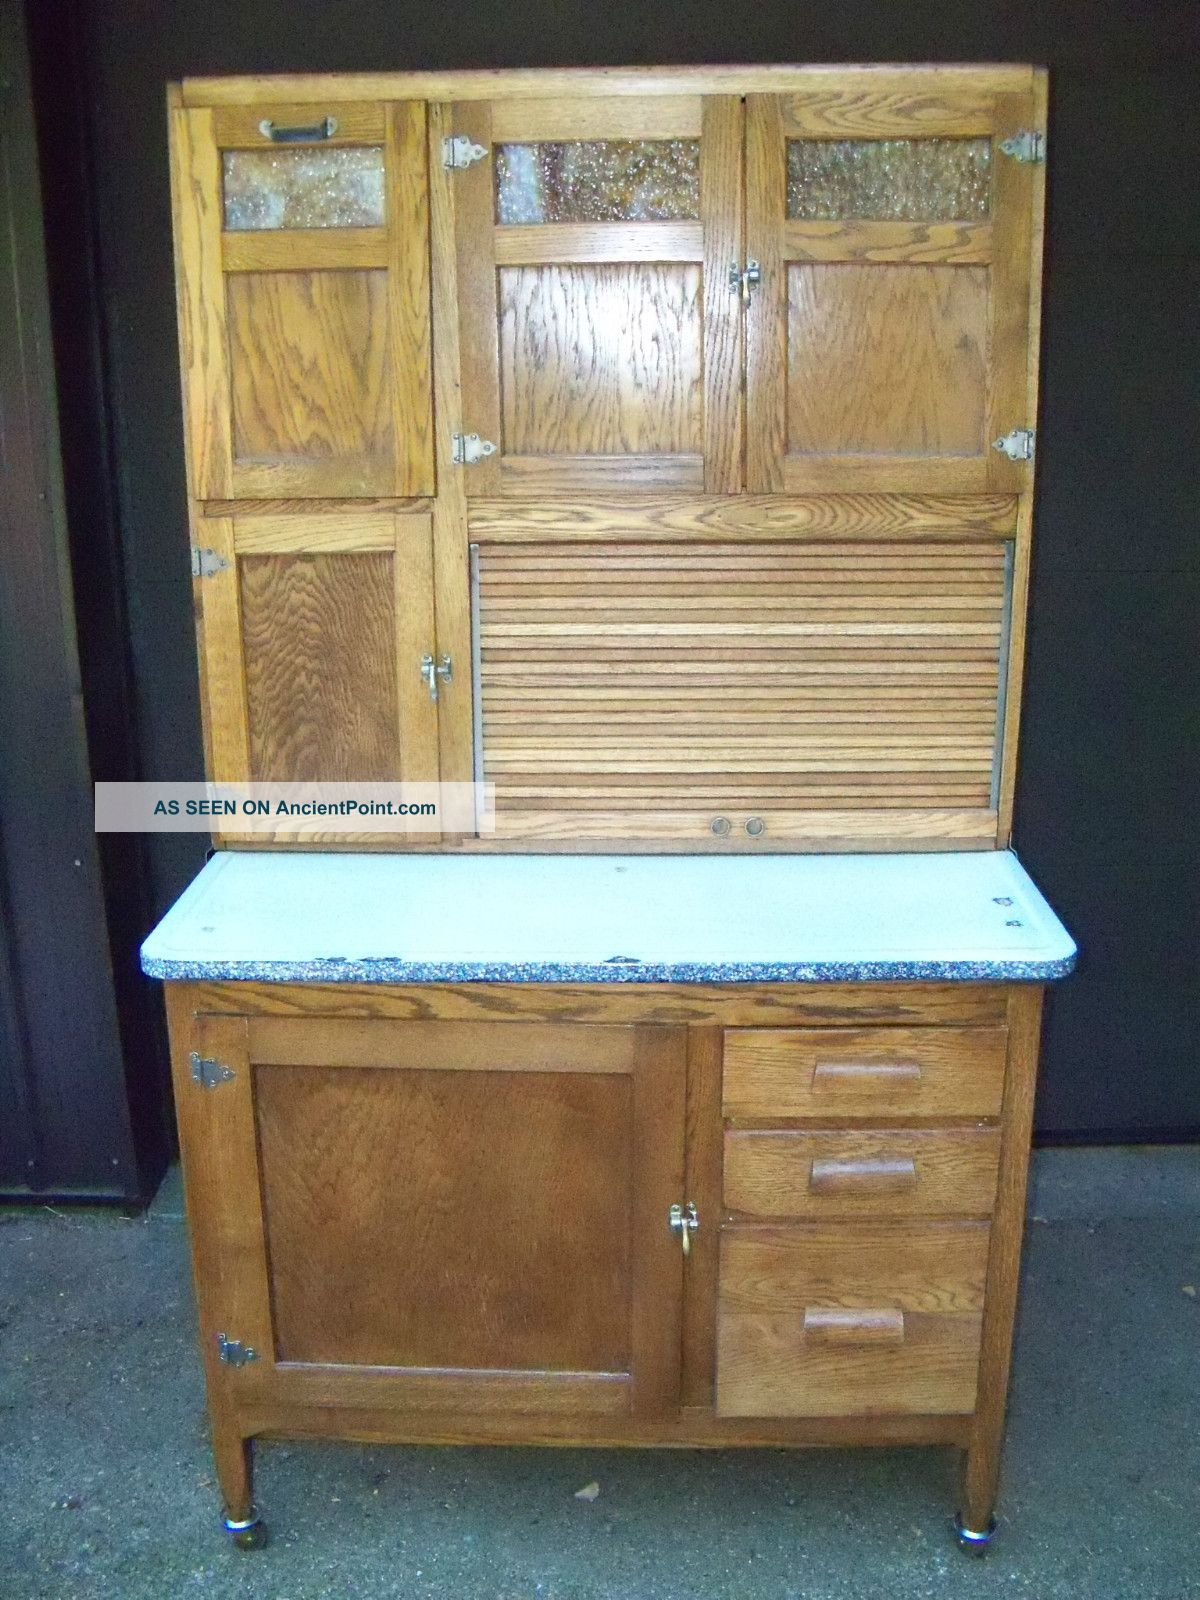 Oak Kitchen Maid Hoosier Style Cabinet Slag Glass Windows Restored